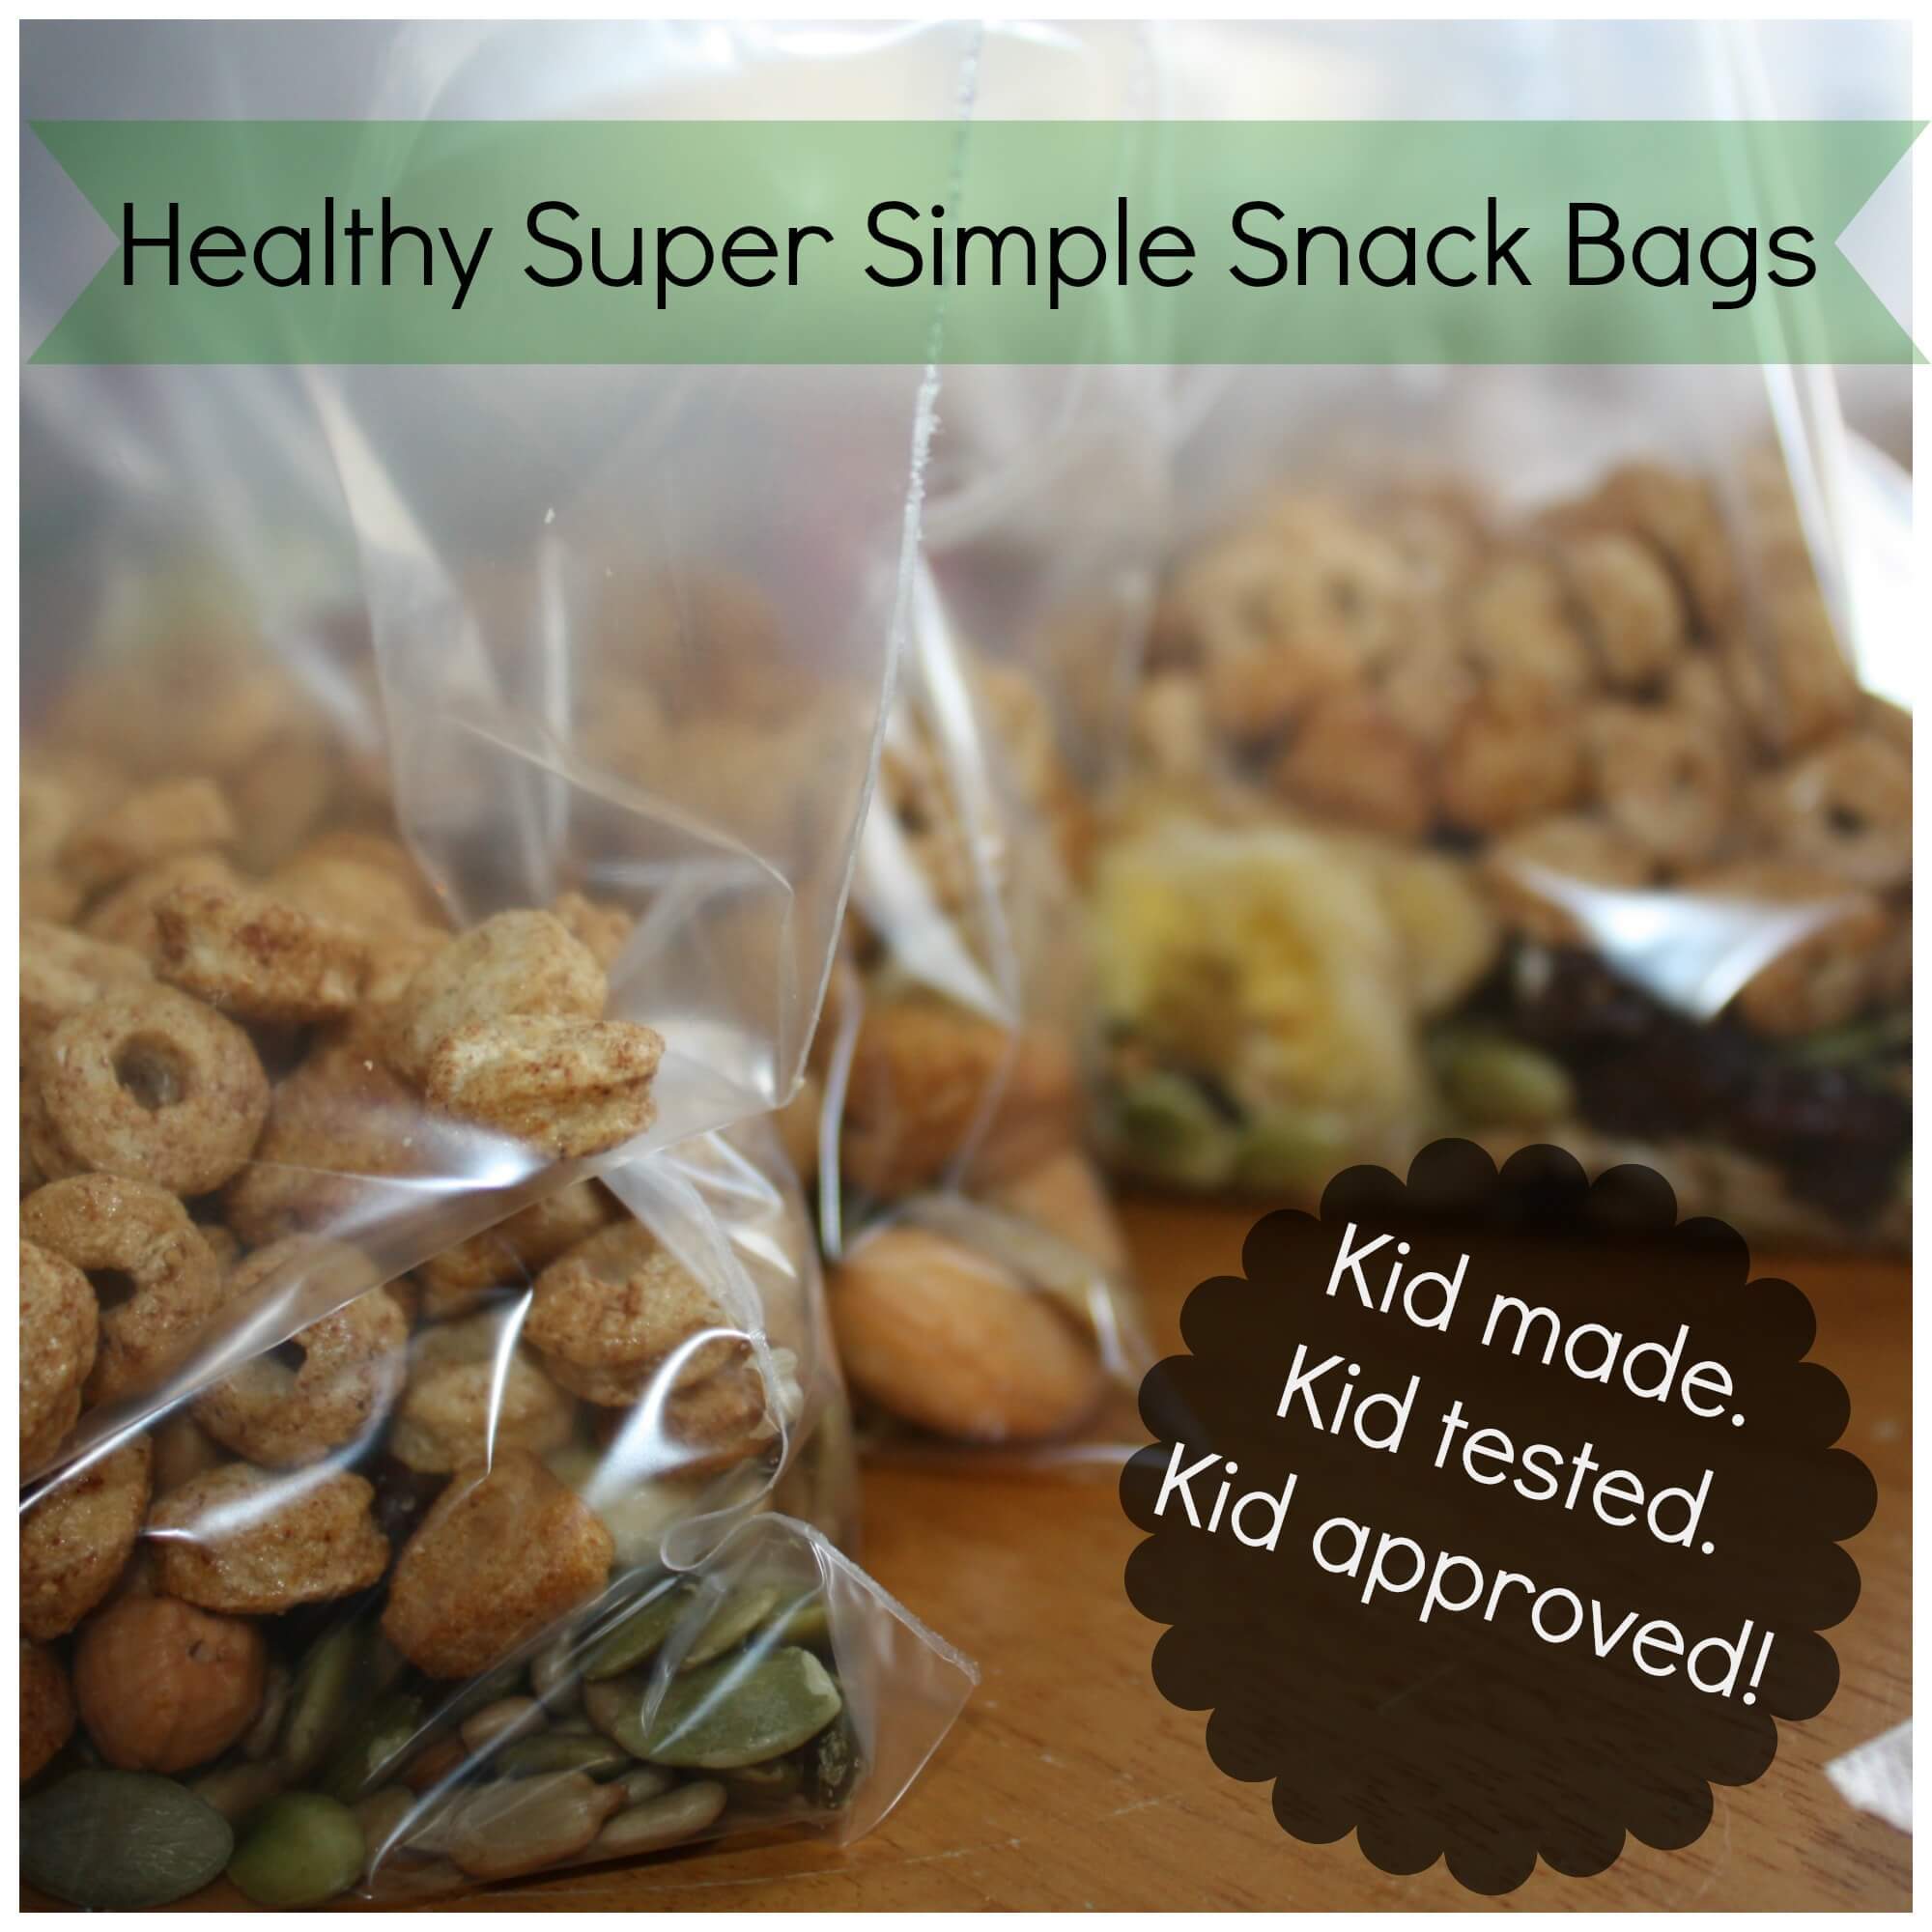 Preparing Snack Bags for Anytime Snacks